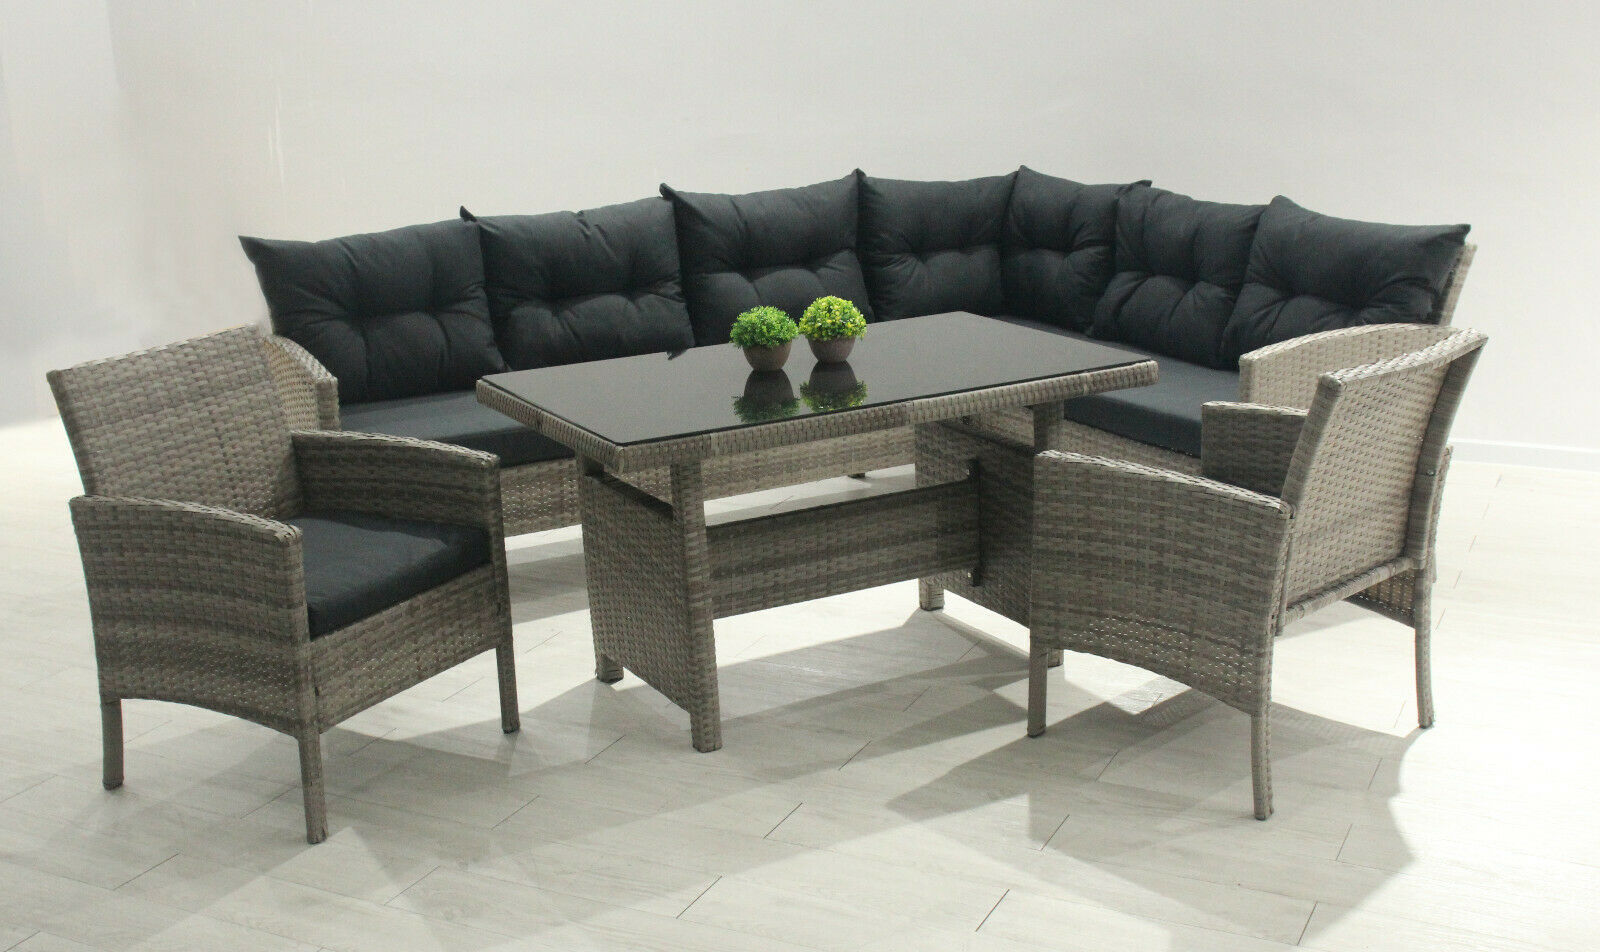 cadiz polyrattan ecklounge gartenm bel sitzgruppe grau. Black Bedroom Furniture Sets. Home Design Ideas